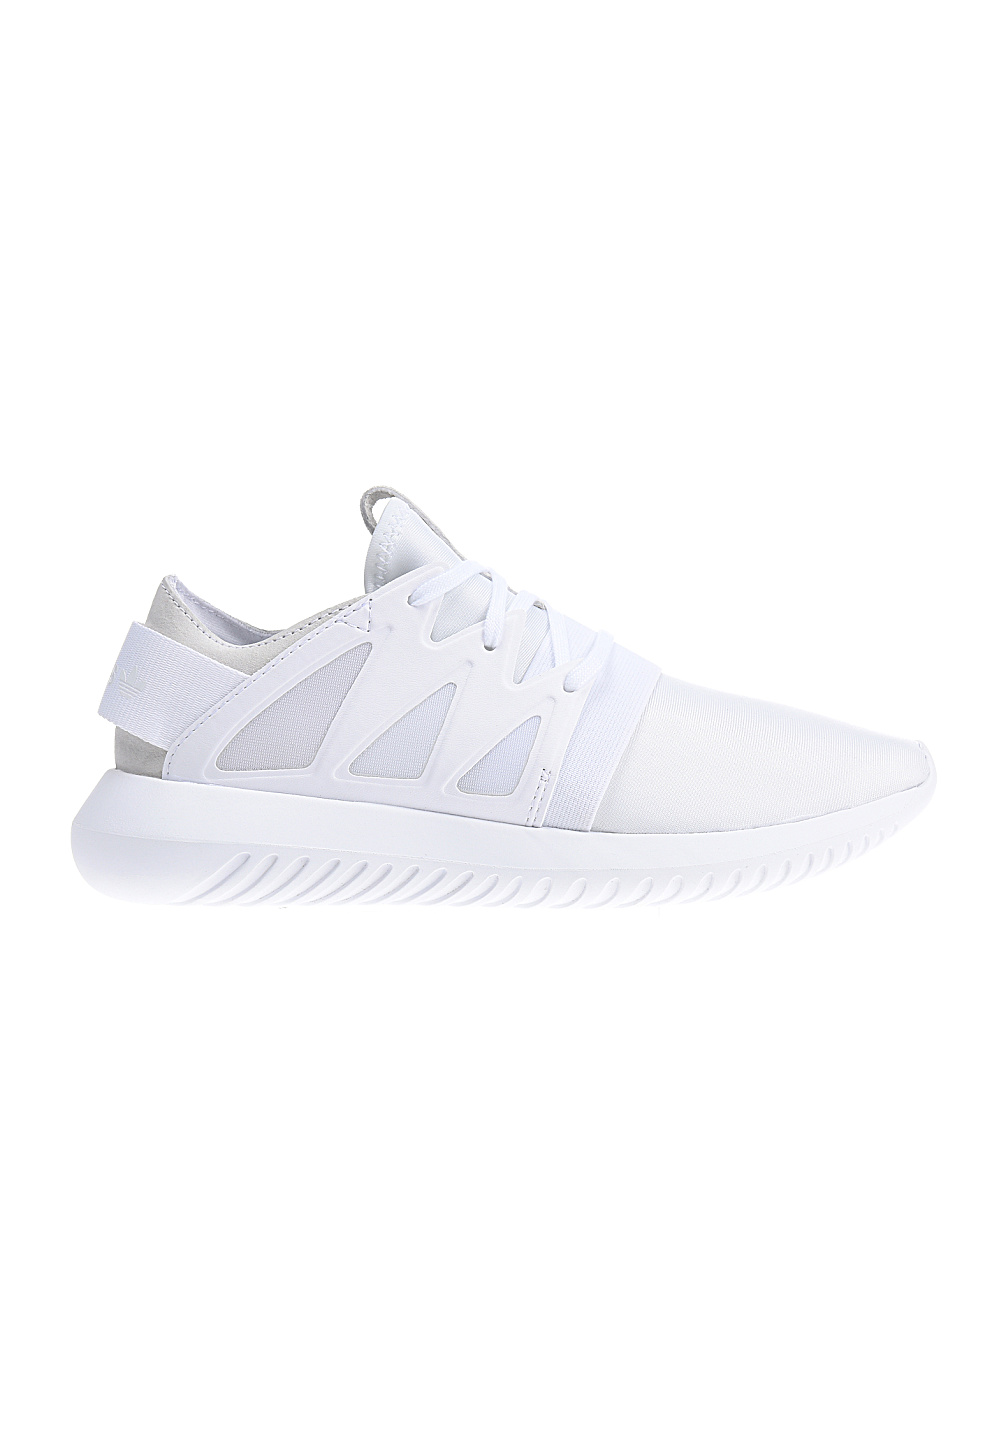 ADIDAS ORIGINALS Tubular Viral Sneakers voor Dames Wit